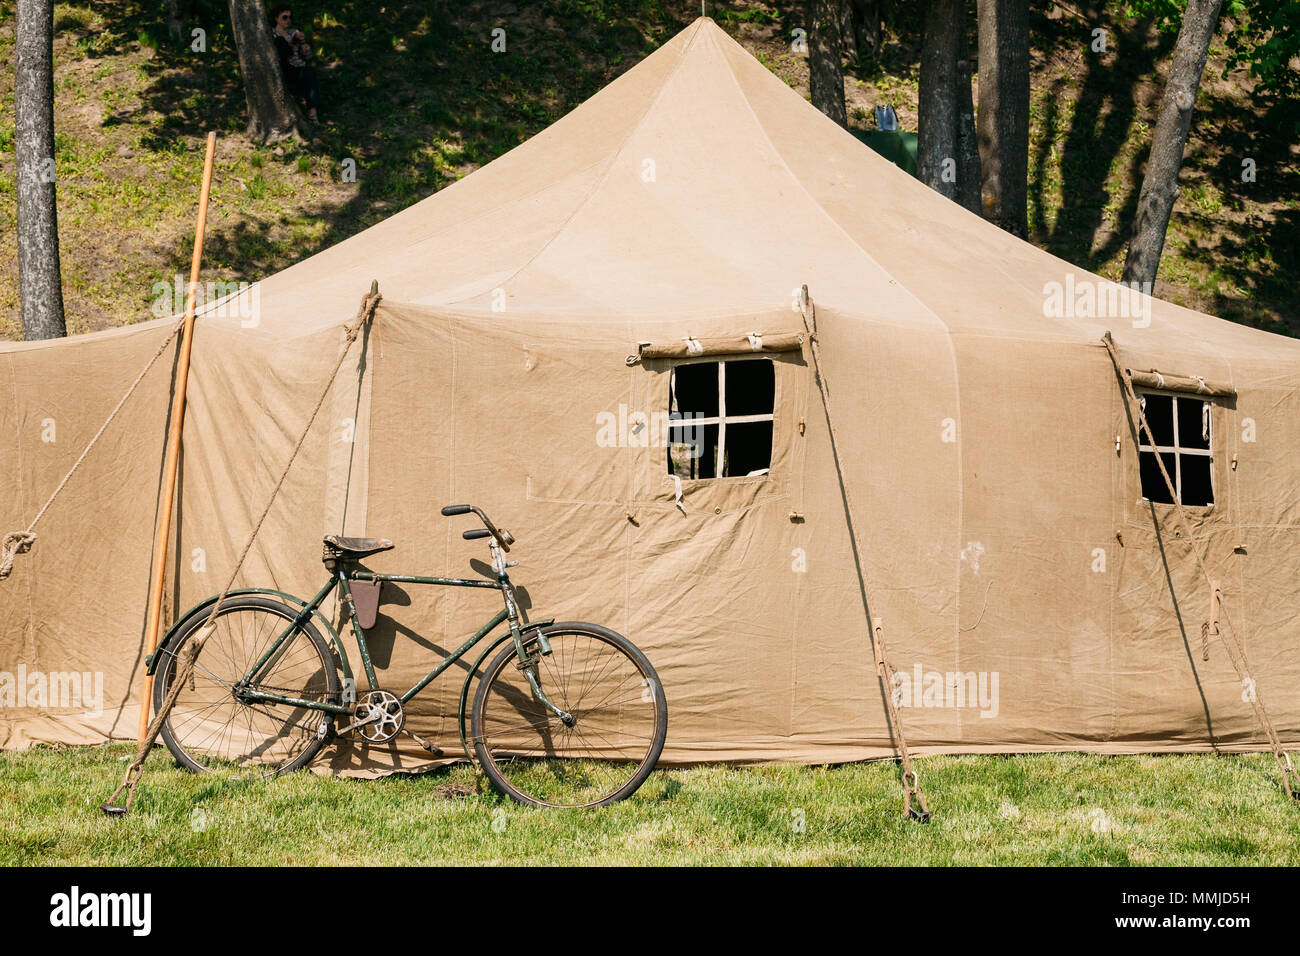 The Old Rarity Bicycle Parked Next To The Large Soviet Military Canvas Khaki Tent On Green Grass In Sunny Summer Forest. & The Old Rarity Bicycle Parked Next To The Large Soviet Military ...